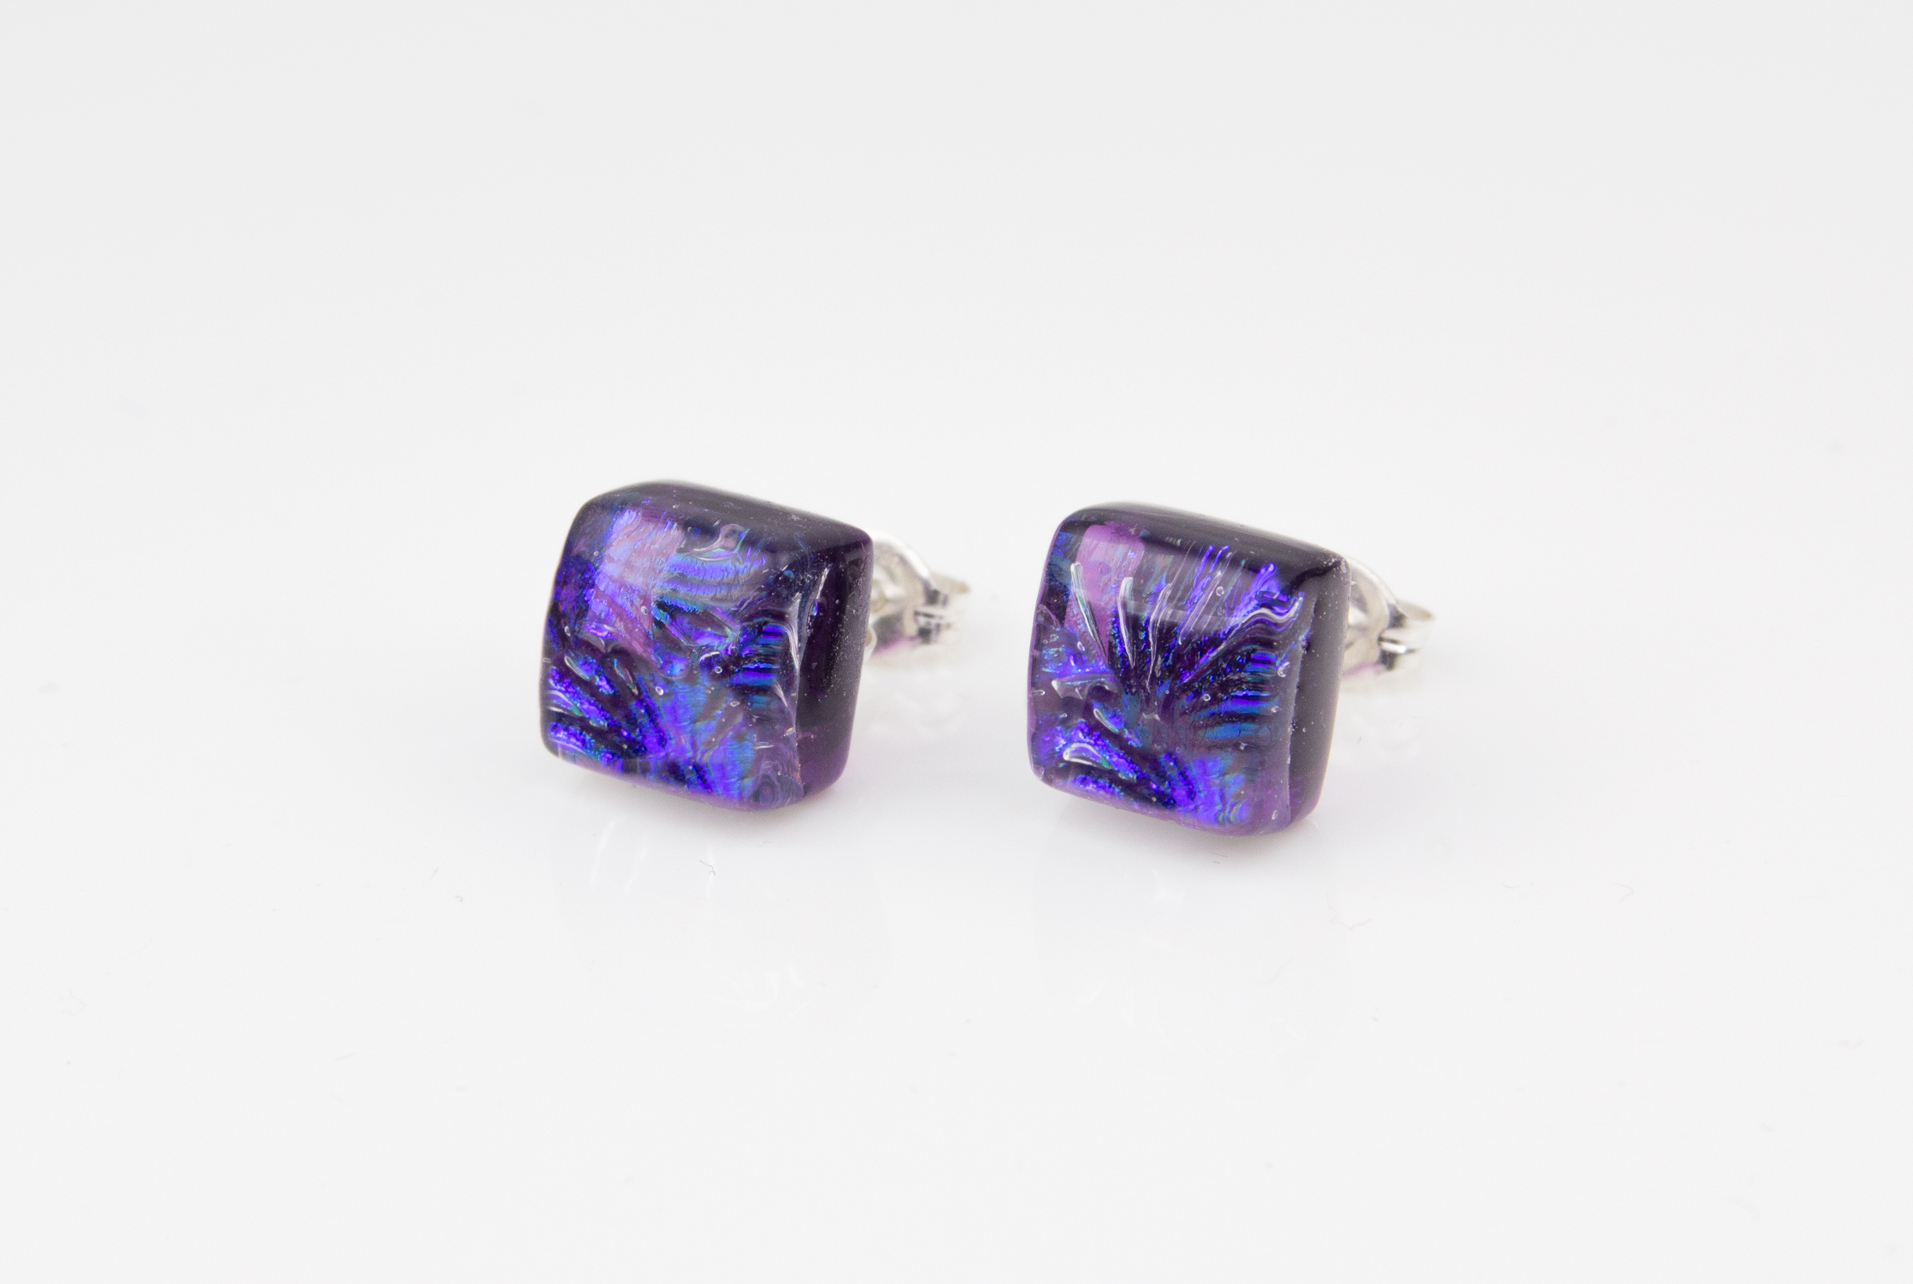 Dichroic glass jewellery uk, handmade violet stud earrings with dichroic starburst pattern, square, glass 8-10mm, sterling silver